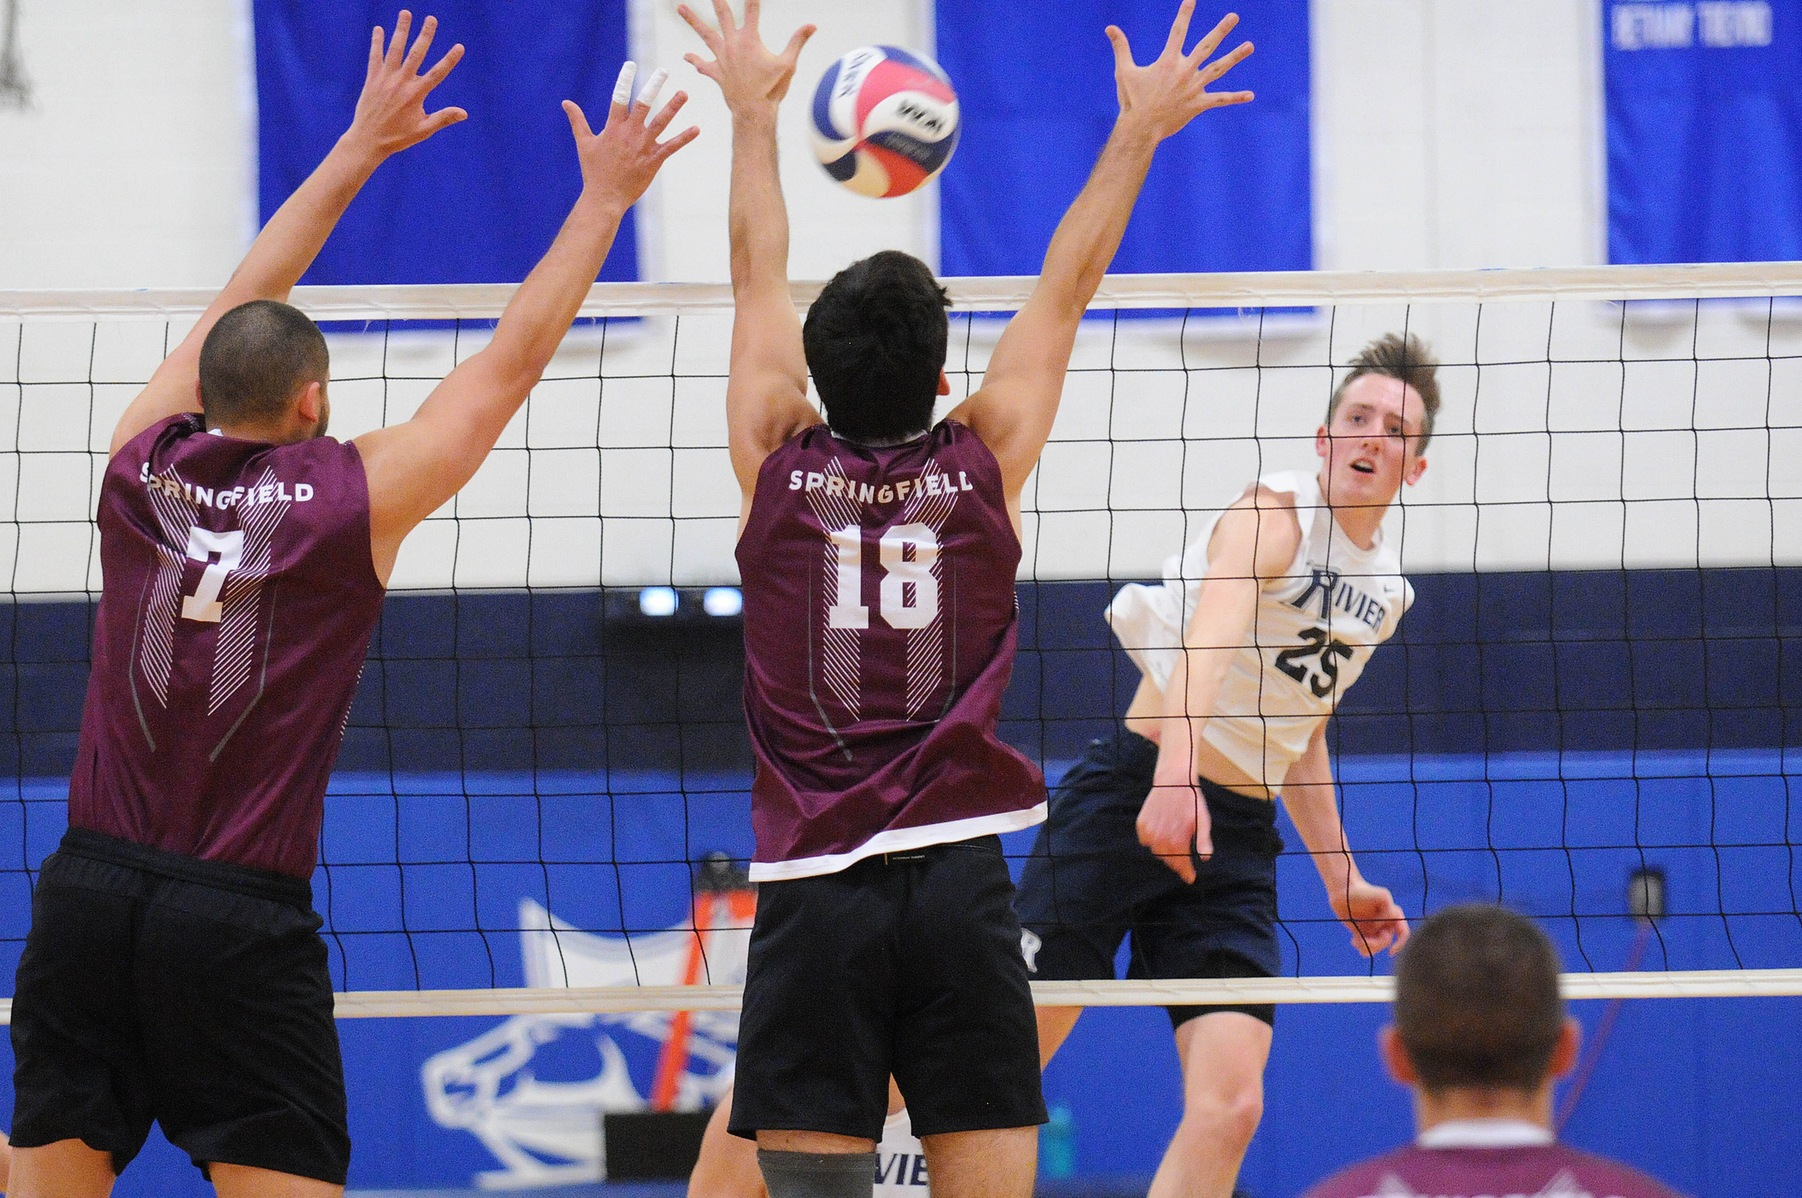 Men's Volleyball: Rivier swept at home by #1 Springfield